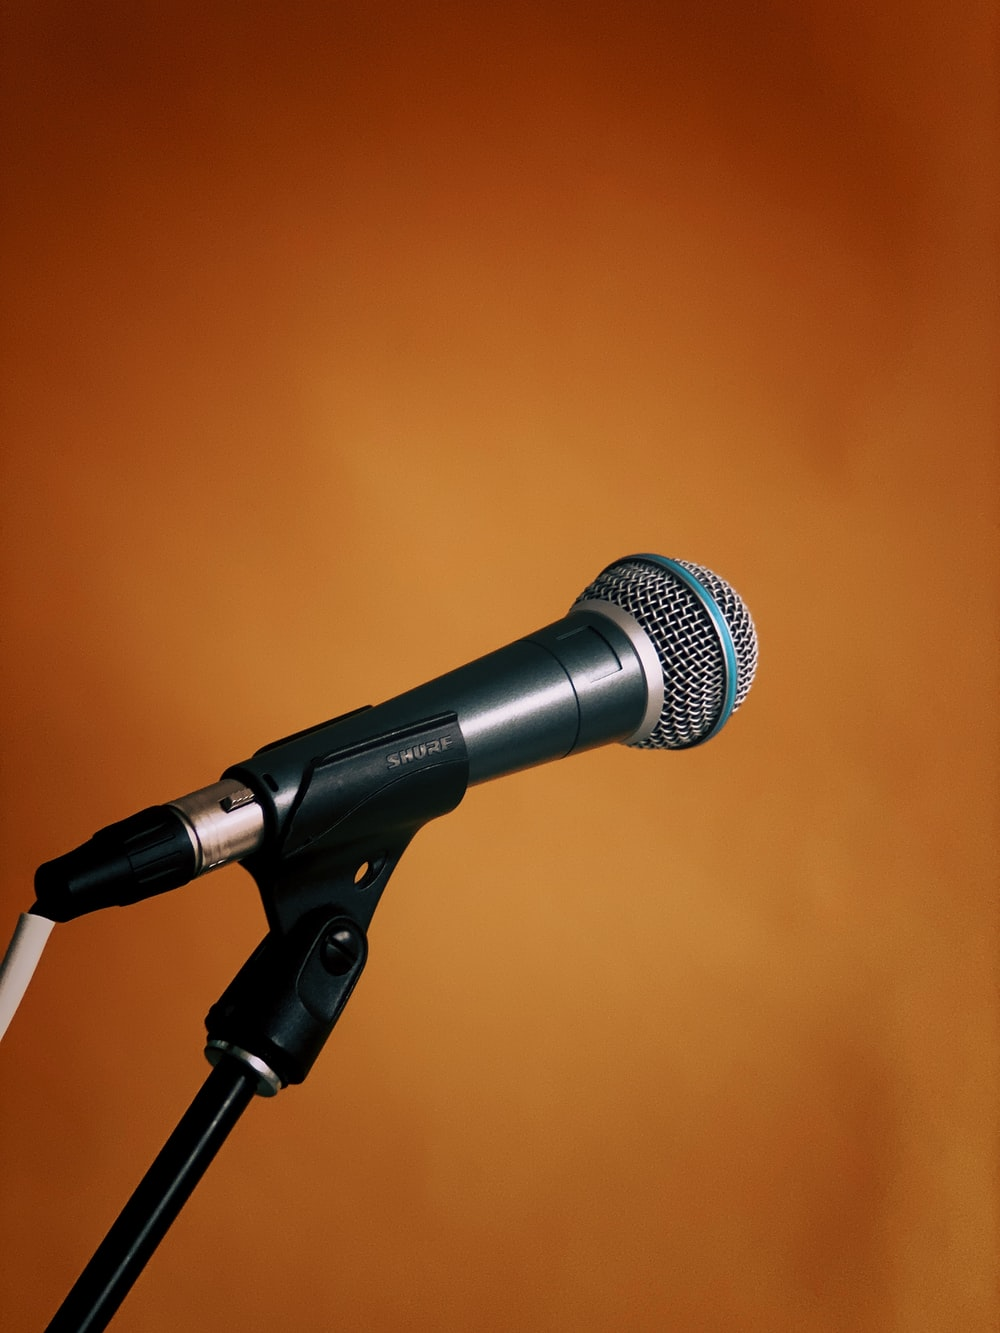 black and gray microphone on microphone stand